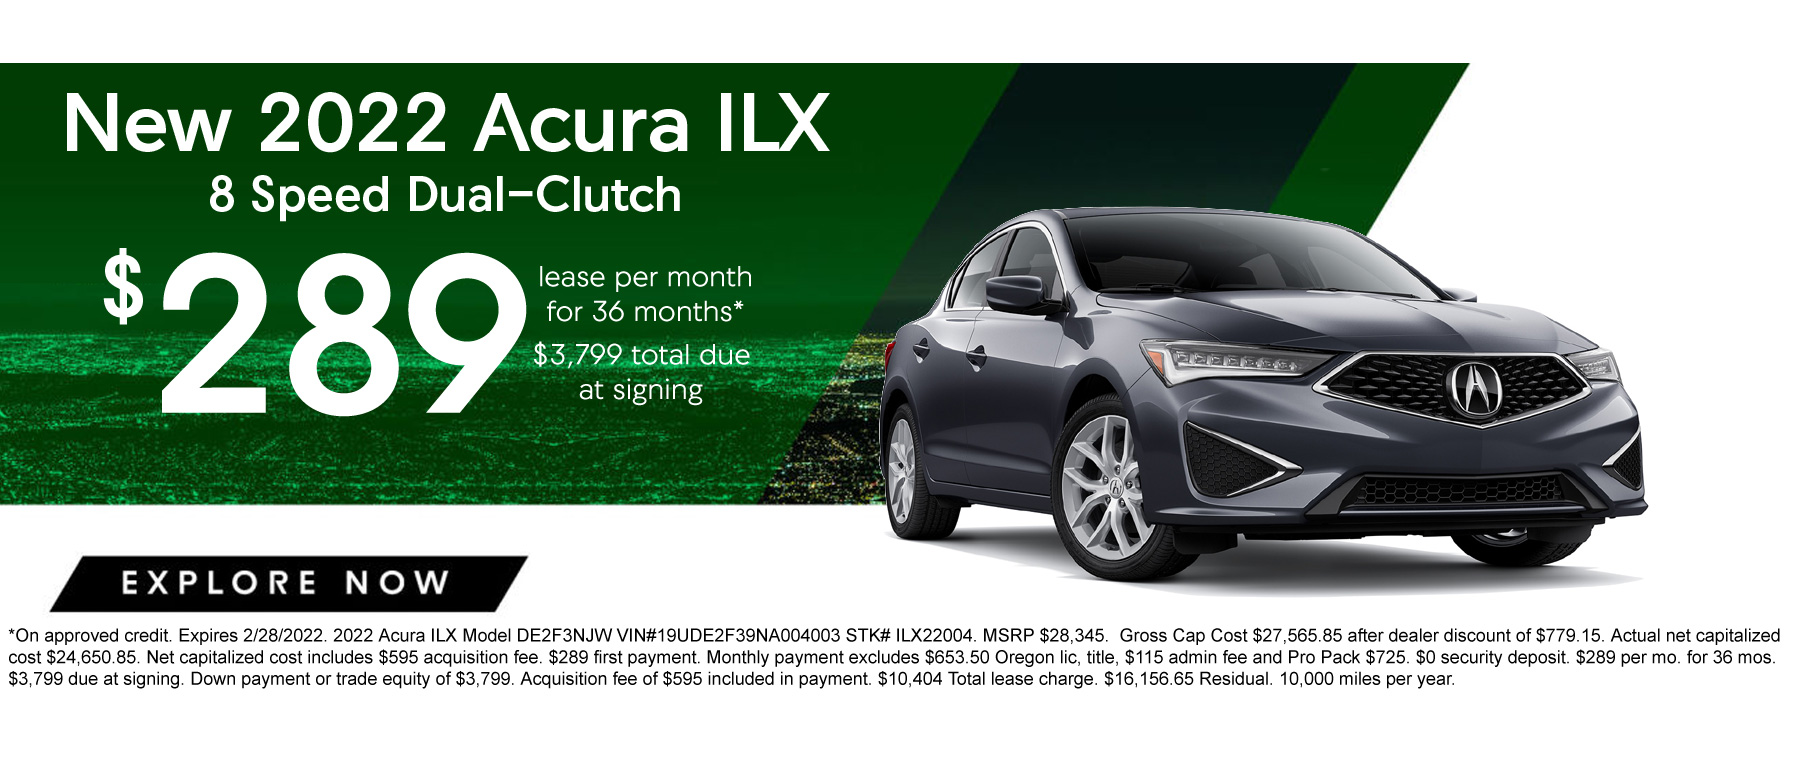 Acura ILX Lease and APR Special